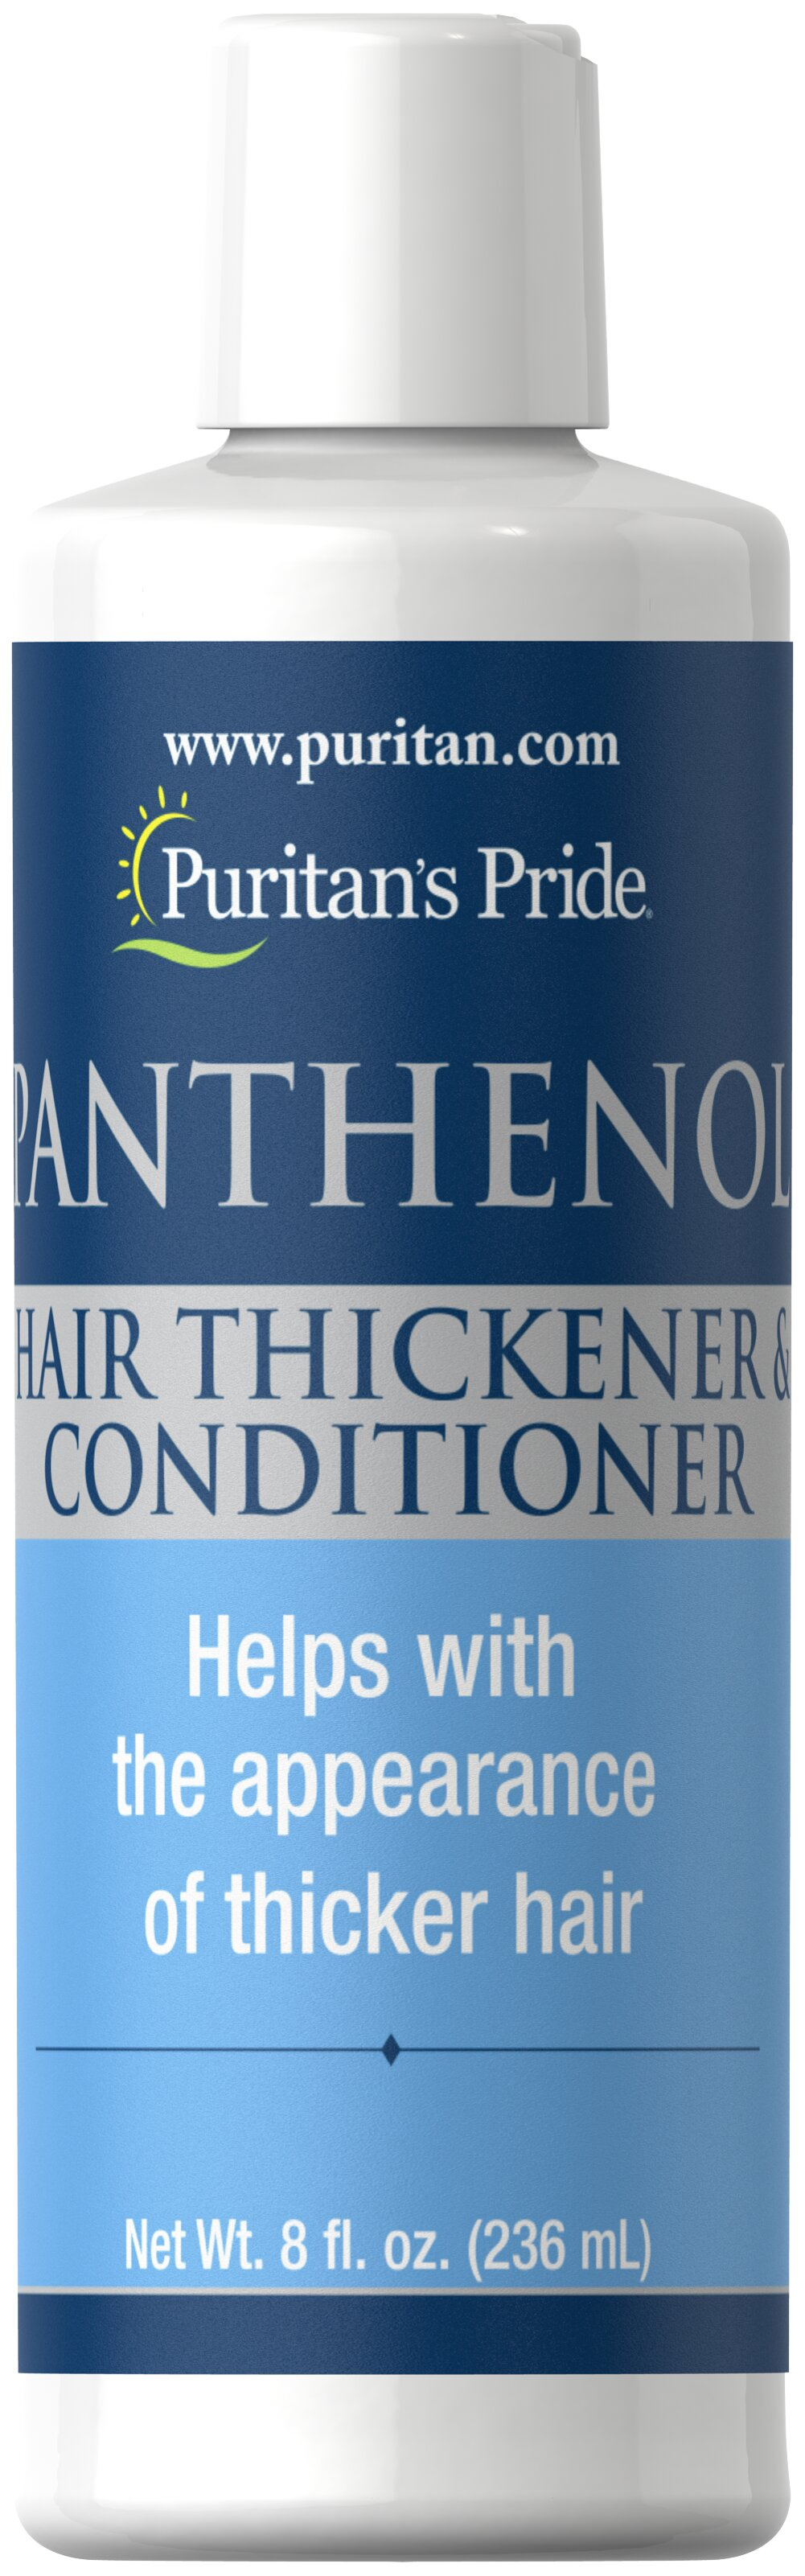 Panthenol Hair Thickener & Conditioner  8 fl oz Conditioner  $12.99